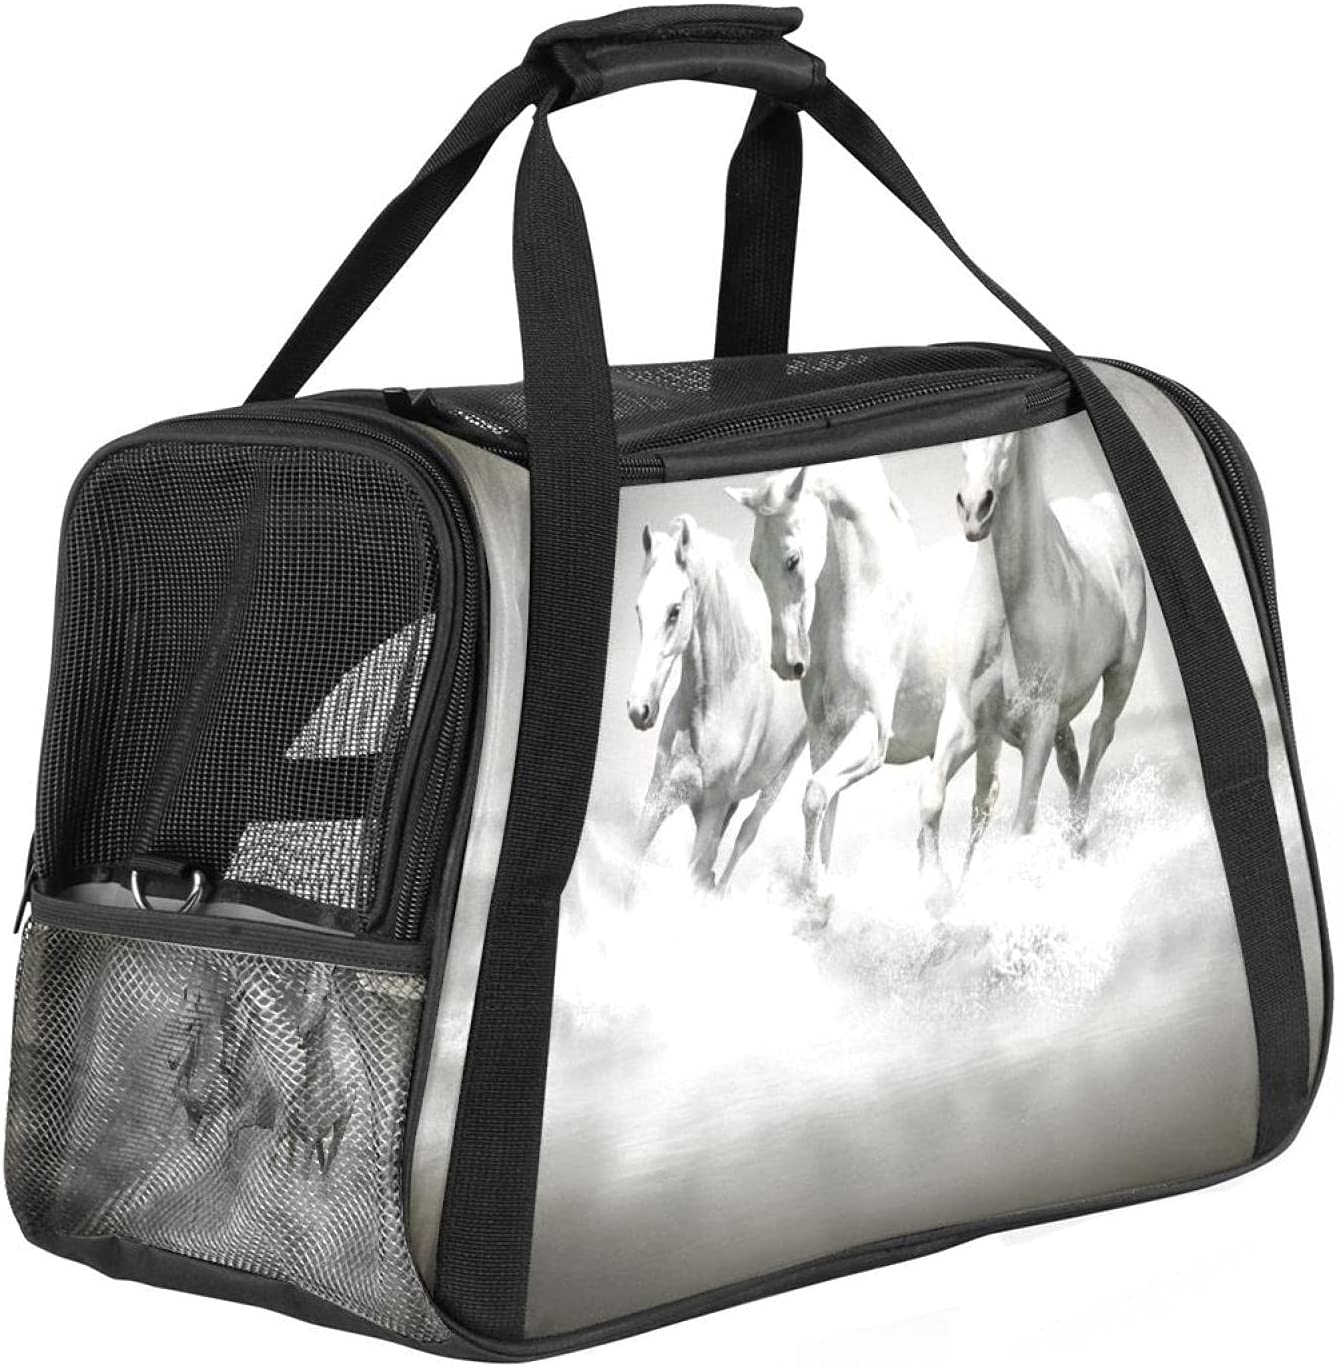 Airline Approved Pet Carriers Max 88% OFF Spring new work Soft Travel Collapsible Sided